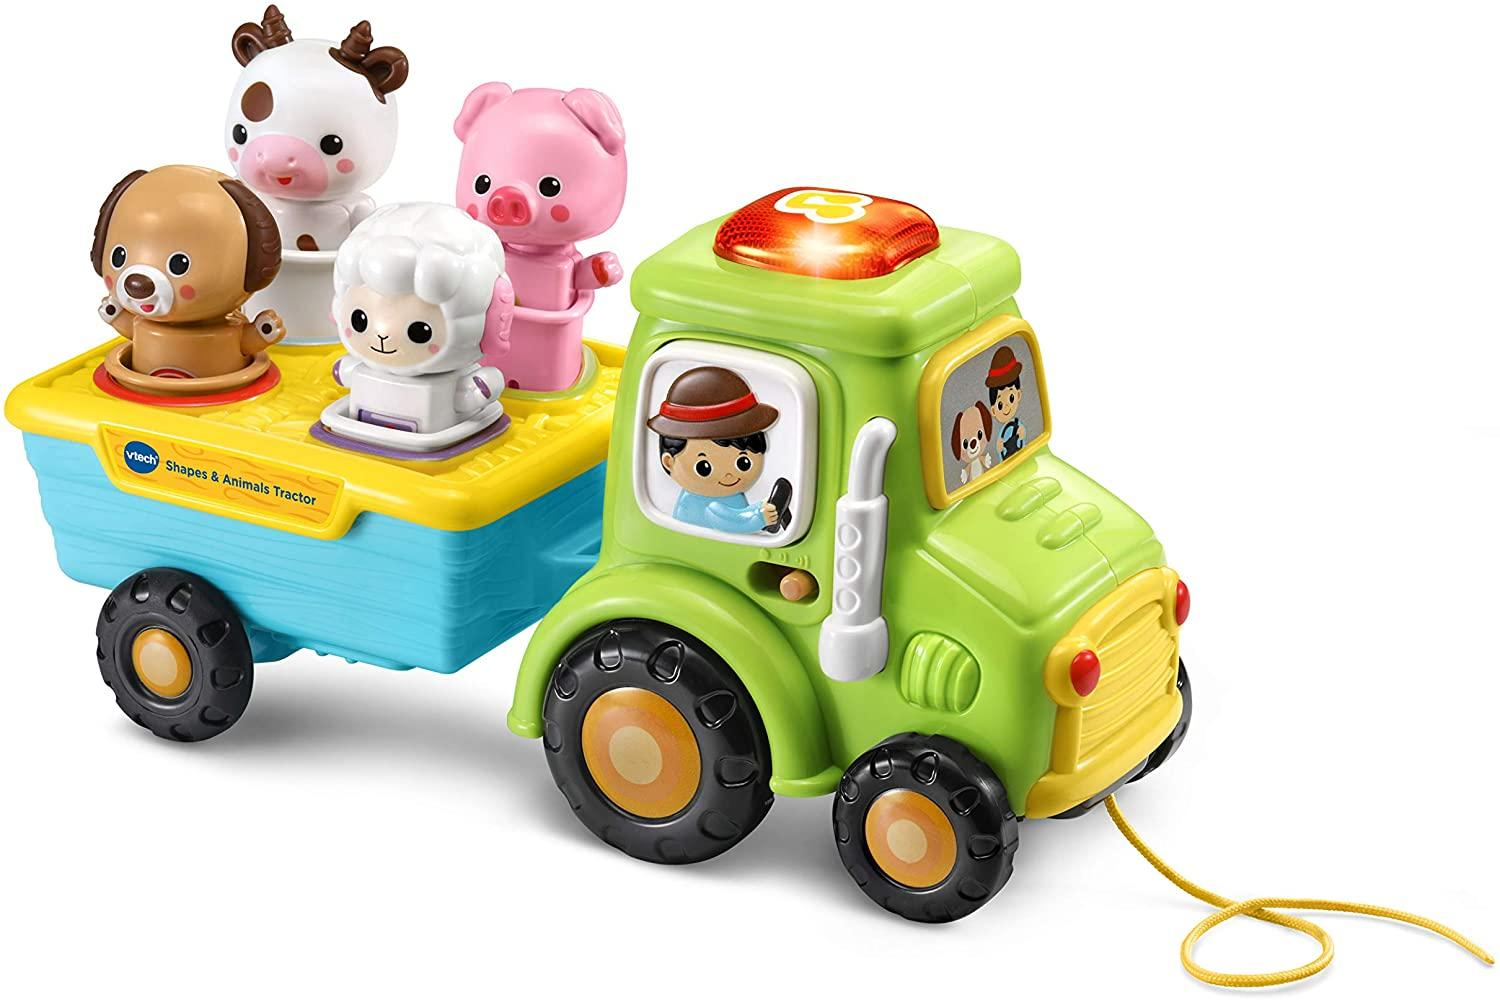 Vtech Shapes And Animals Tractor Toymaster Ballina